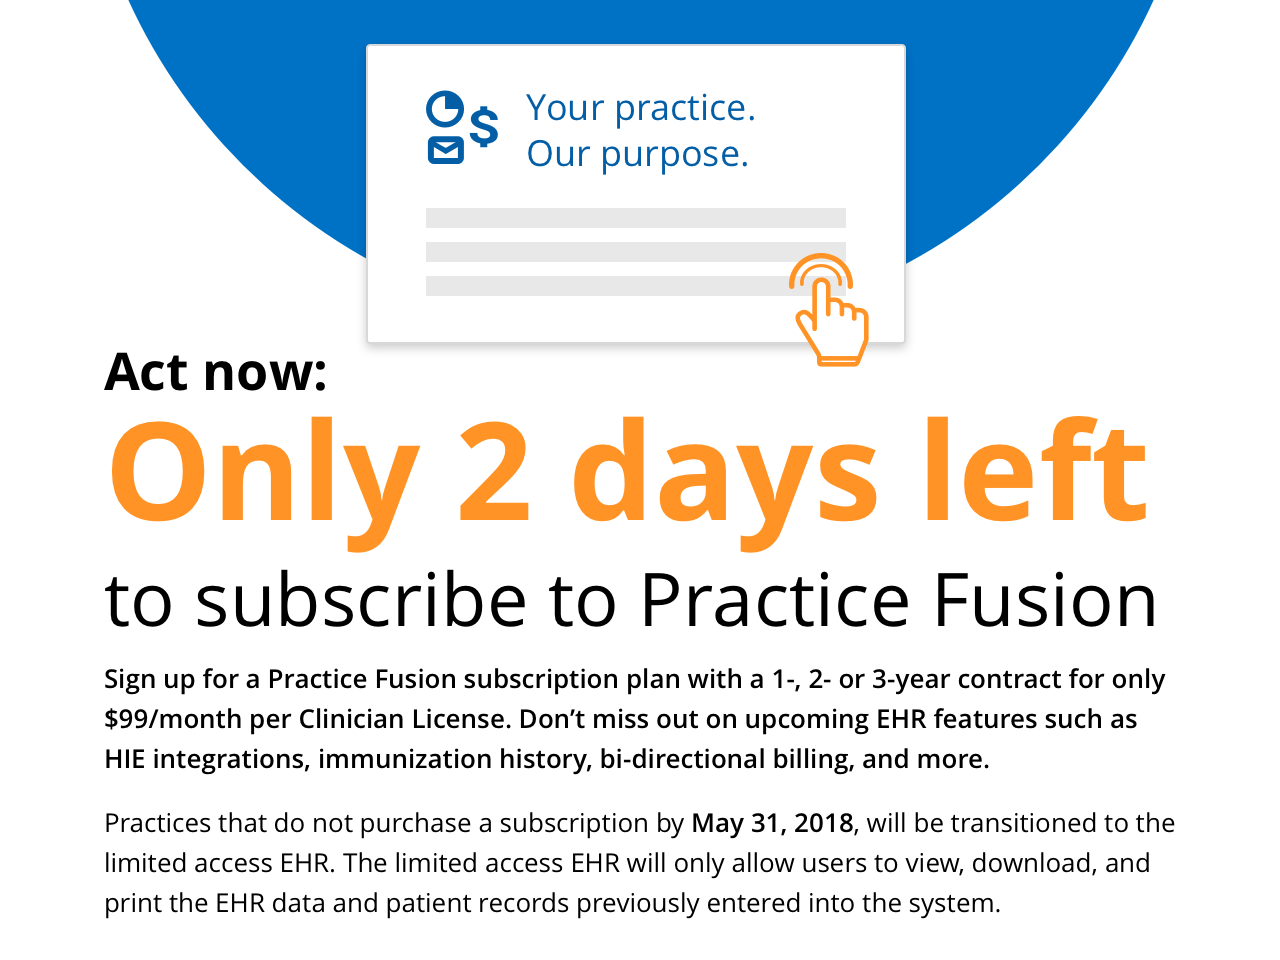 Sign up for a Practice Fusion subscription plan with a 1-, 2- or 3-year contract for only $99/month per Clinician License. Don't miss out on upcoming EHR features such as HIE integrations, immunization history, bi-directional billing, and more.